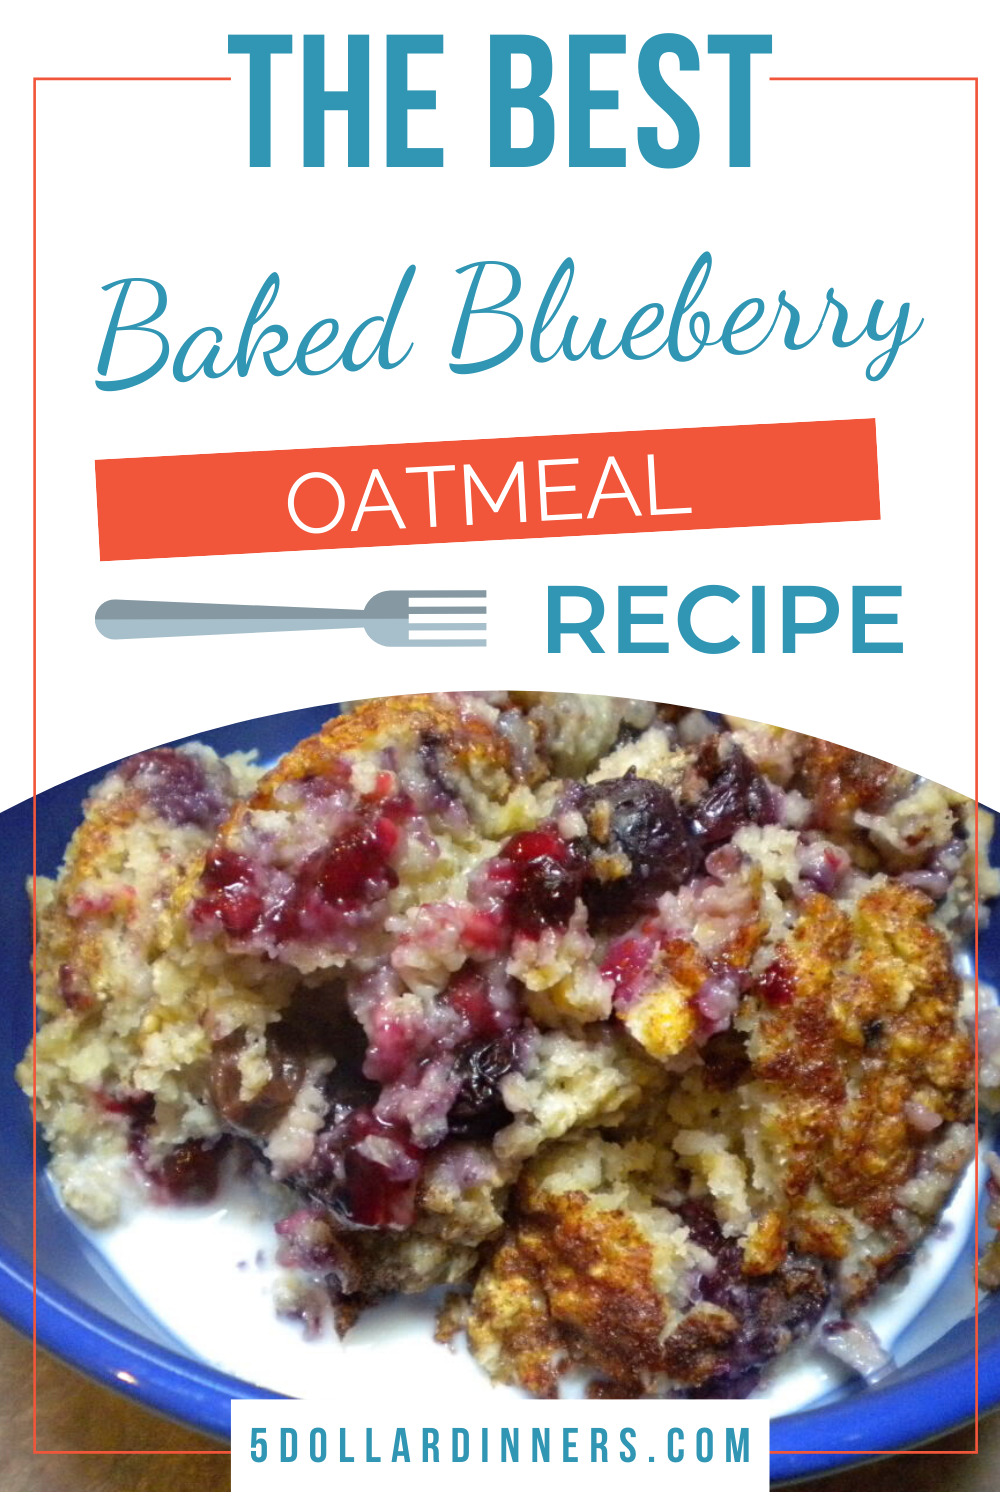 baked blueberry oatmeal